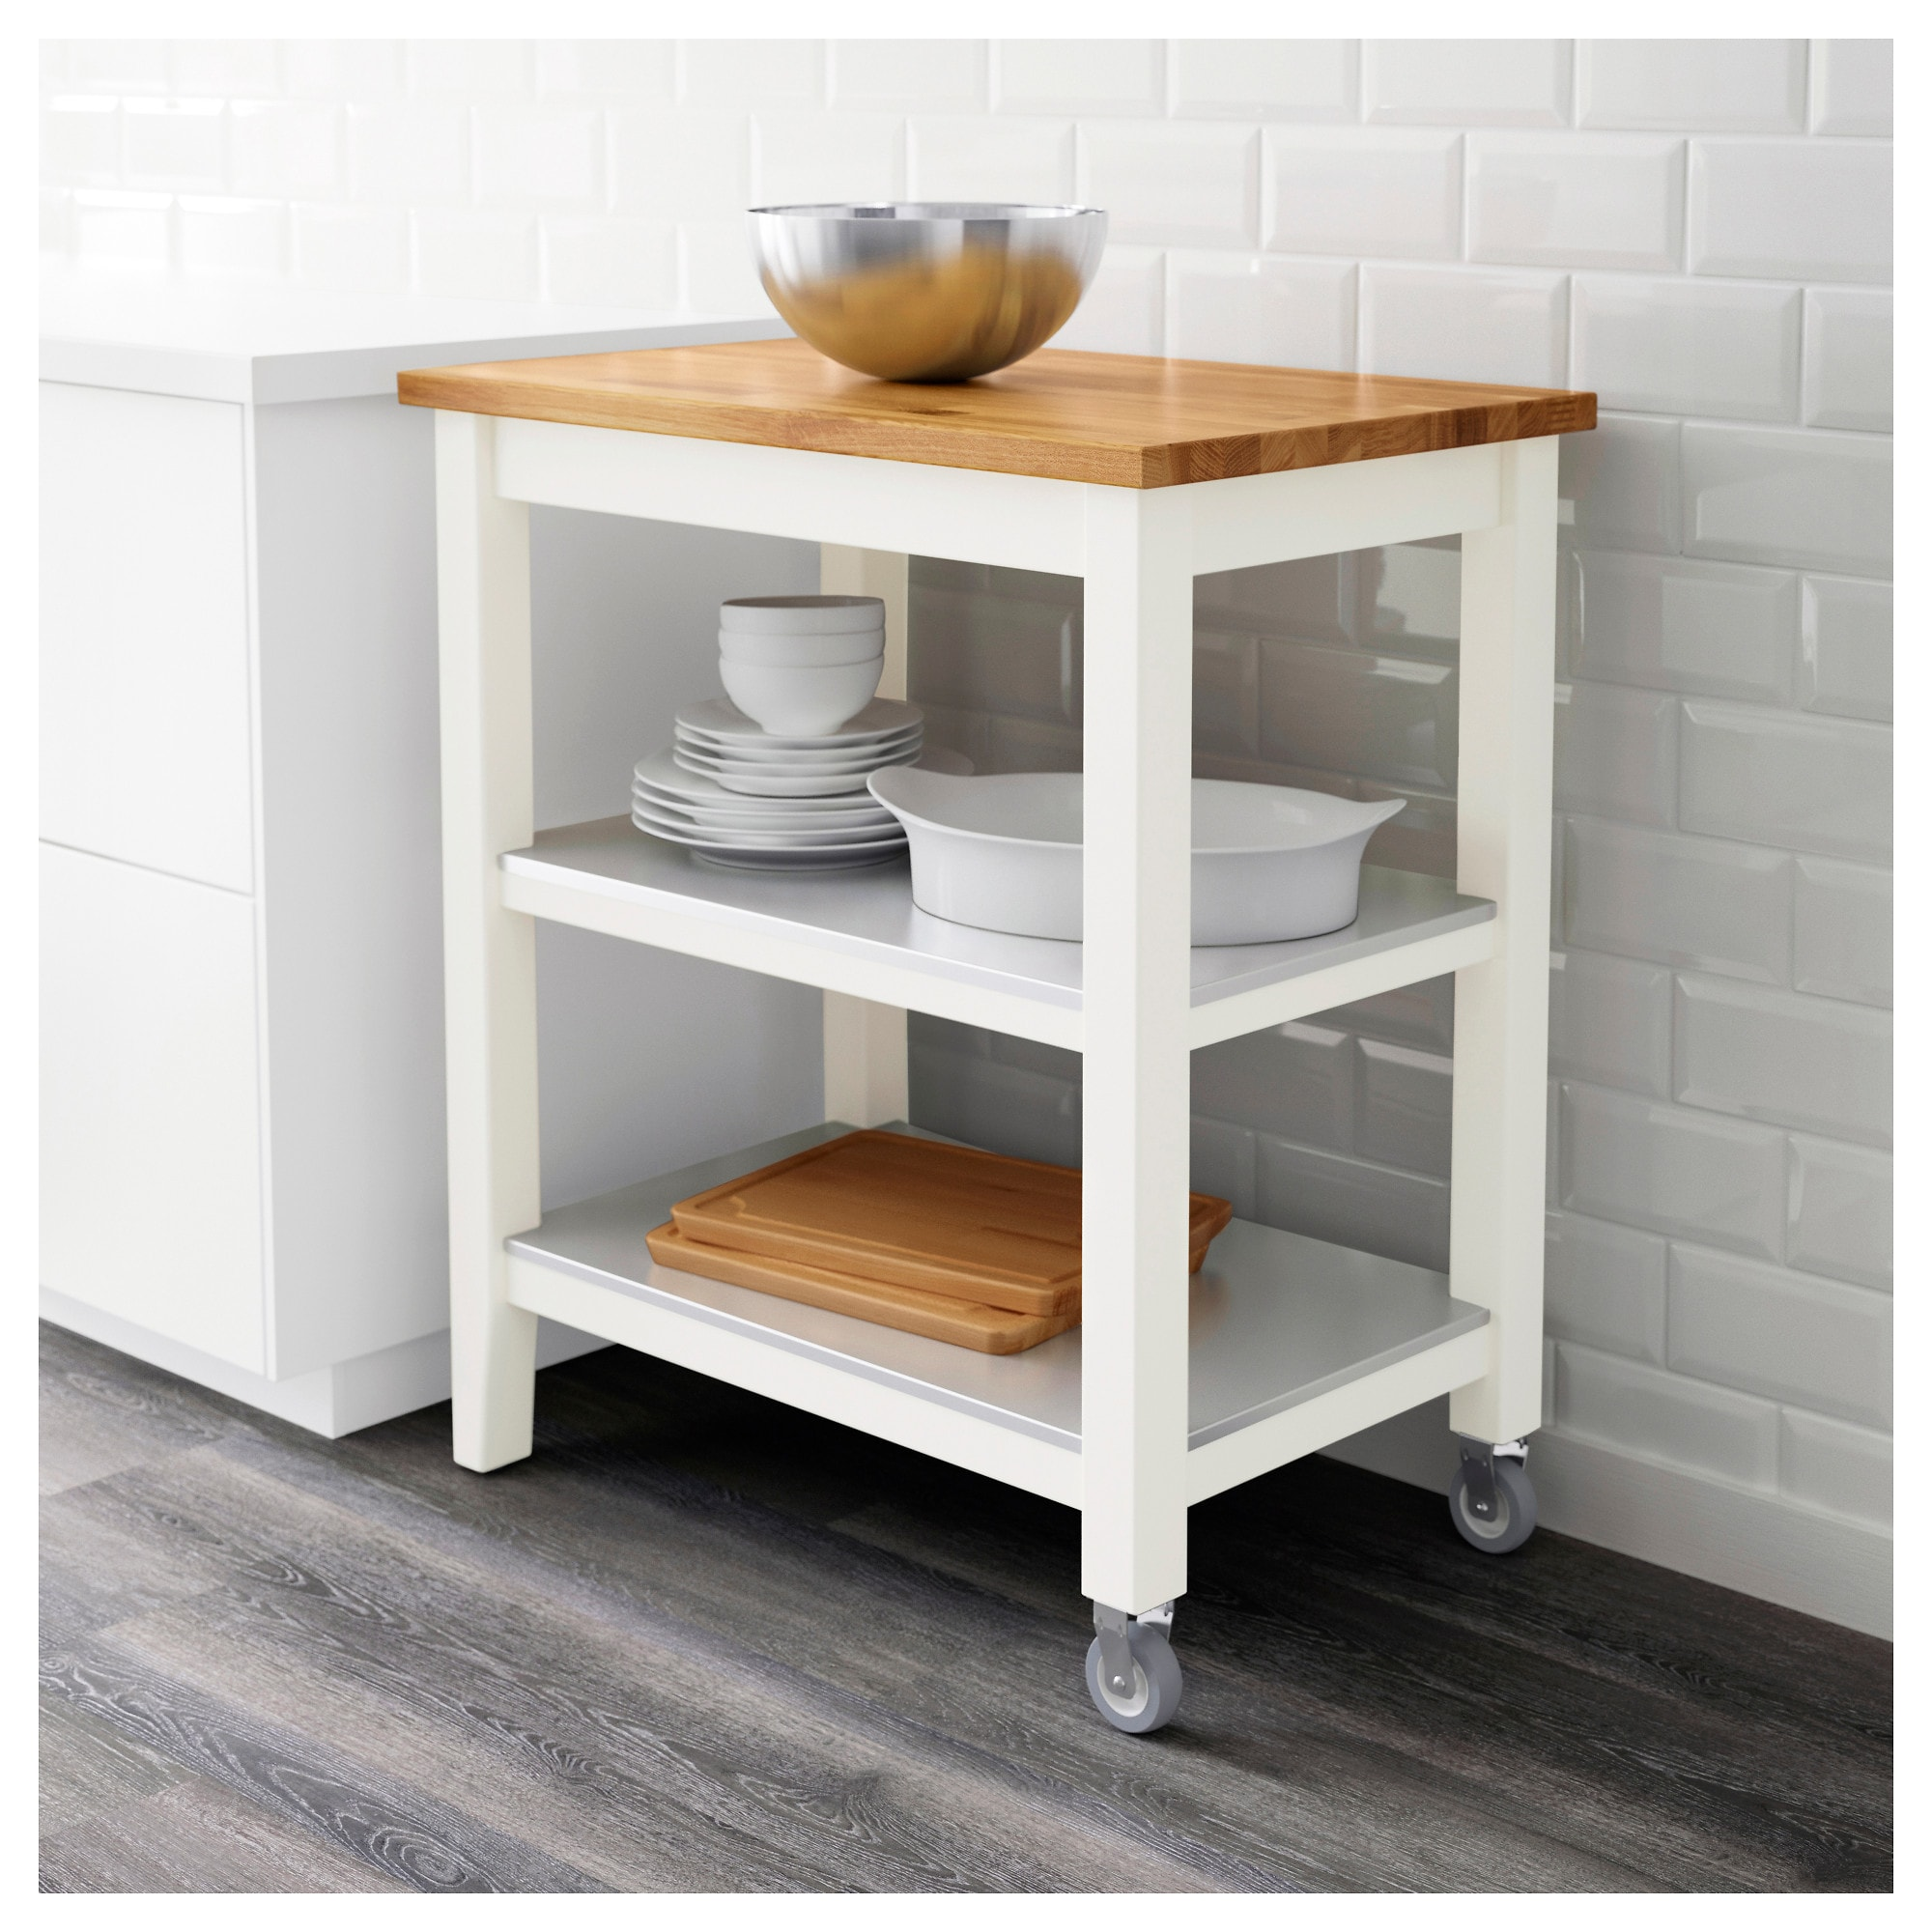 IKEA Kitchen Carts: Featuring The STENSTORP Kitchen Cart